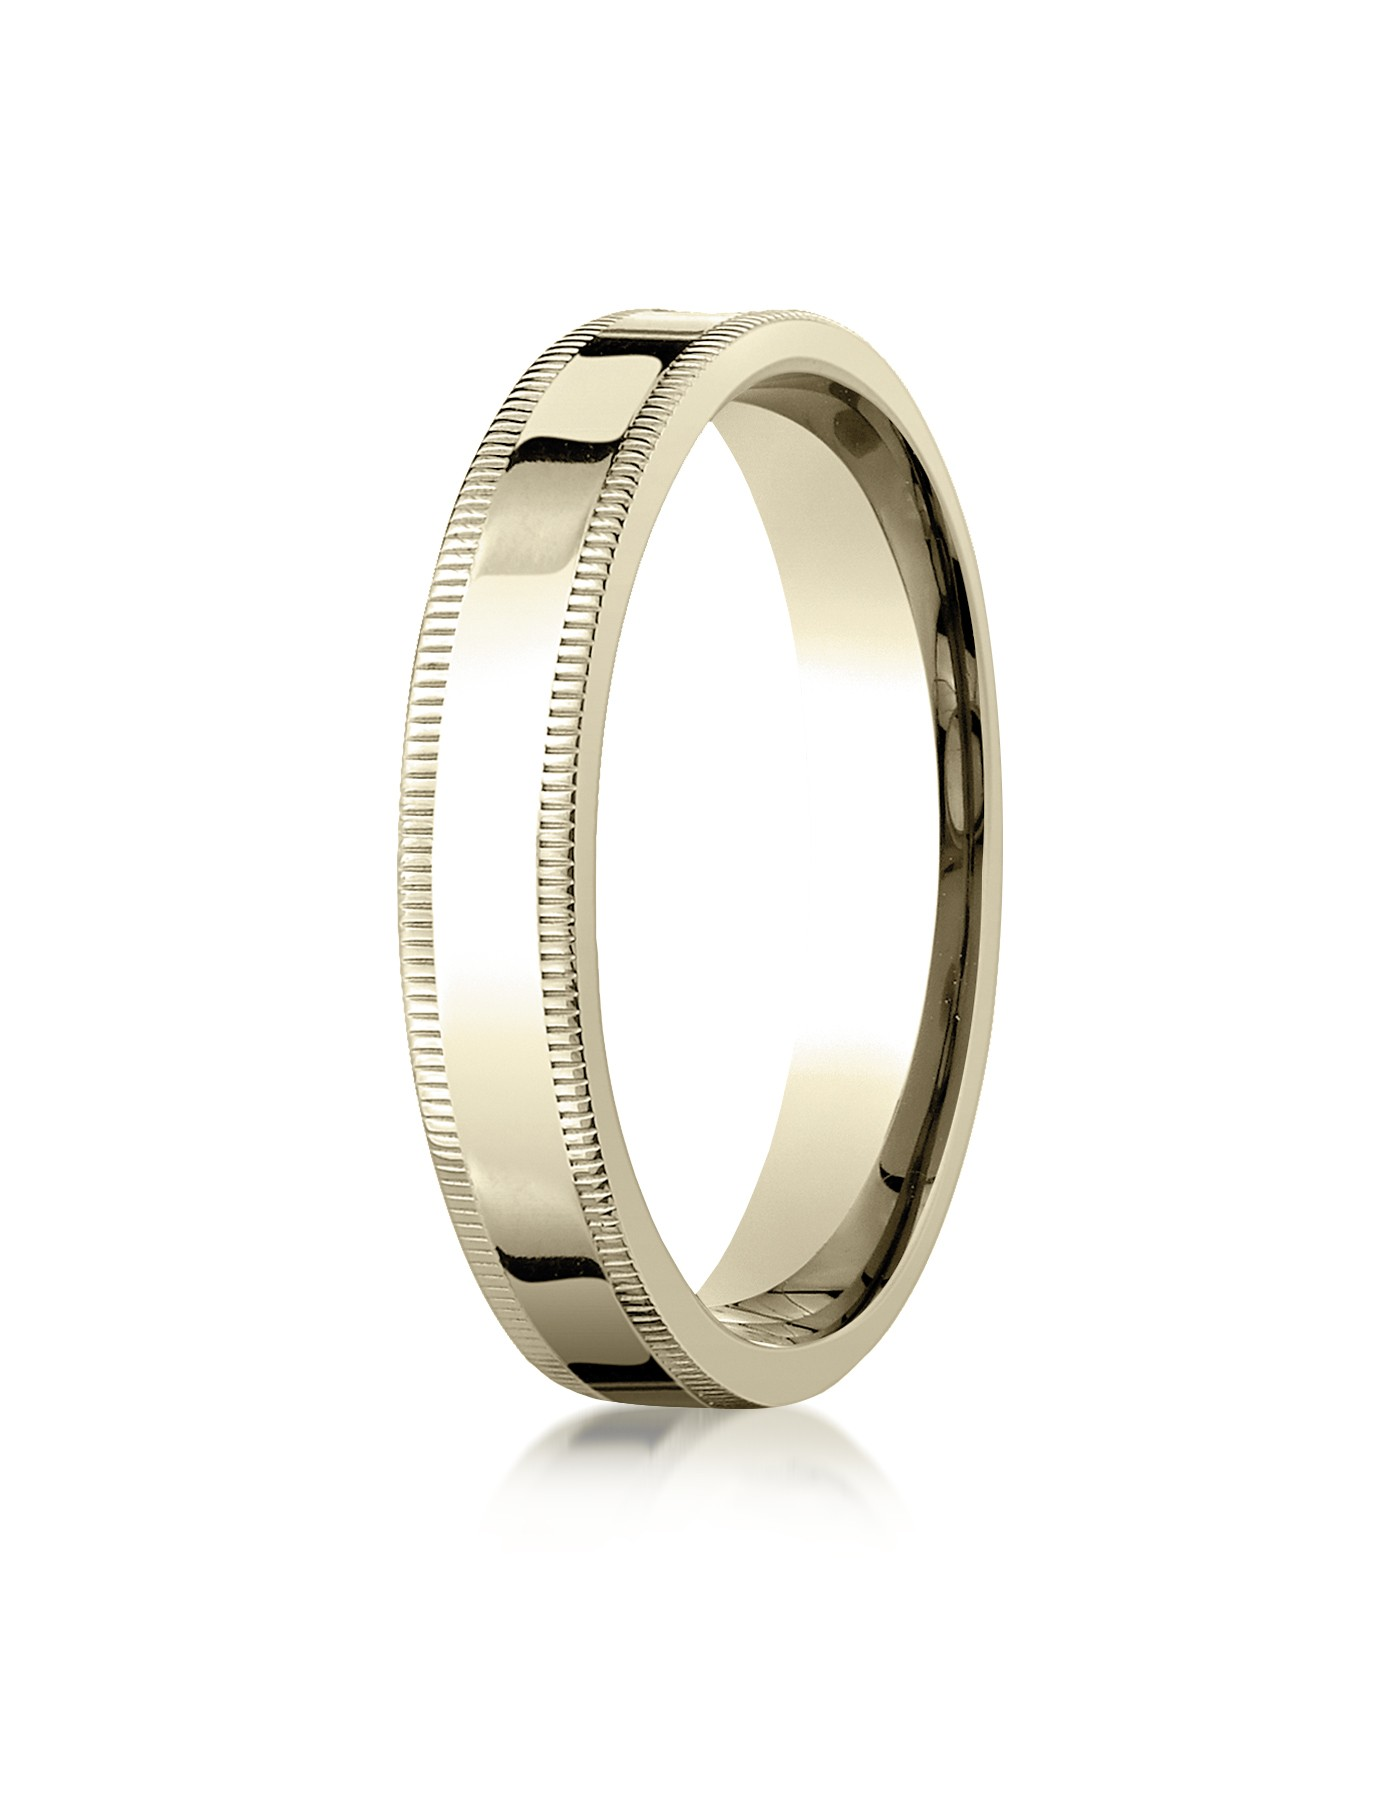 14k Yellow Gold 4mm Flat Comfort-fit Ring With Milgrain